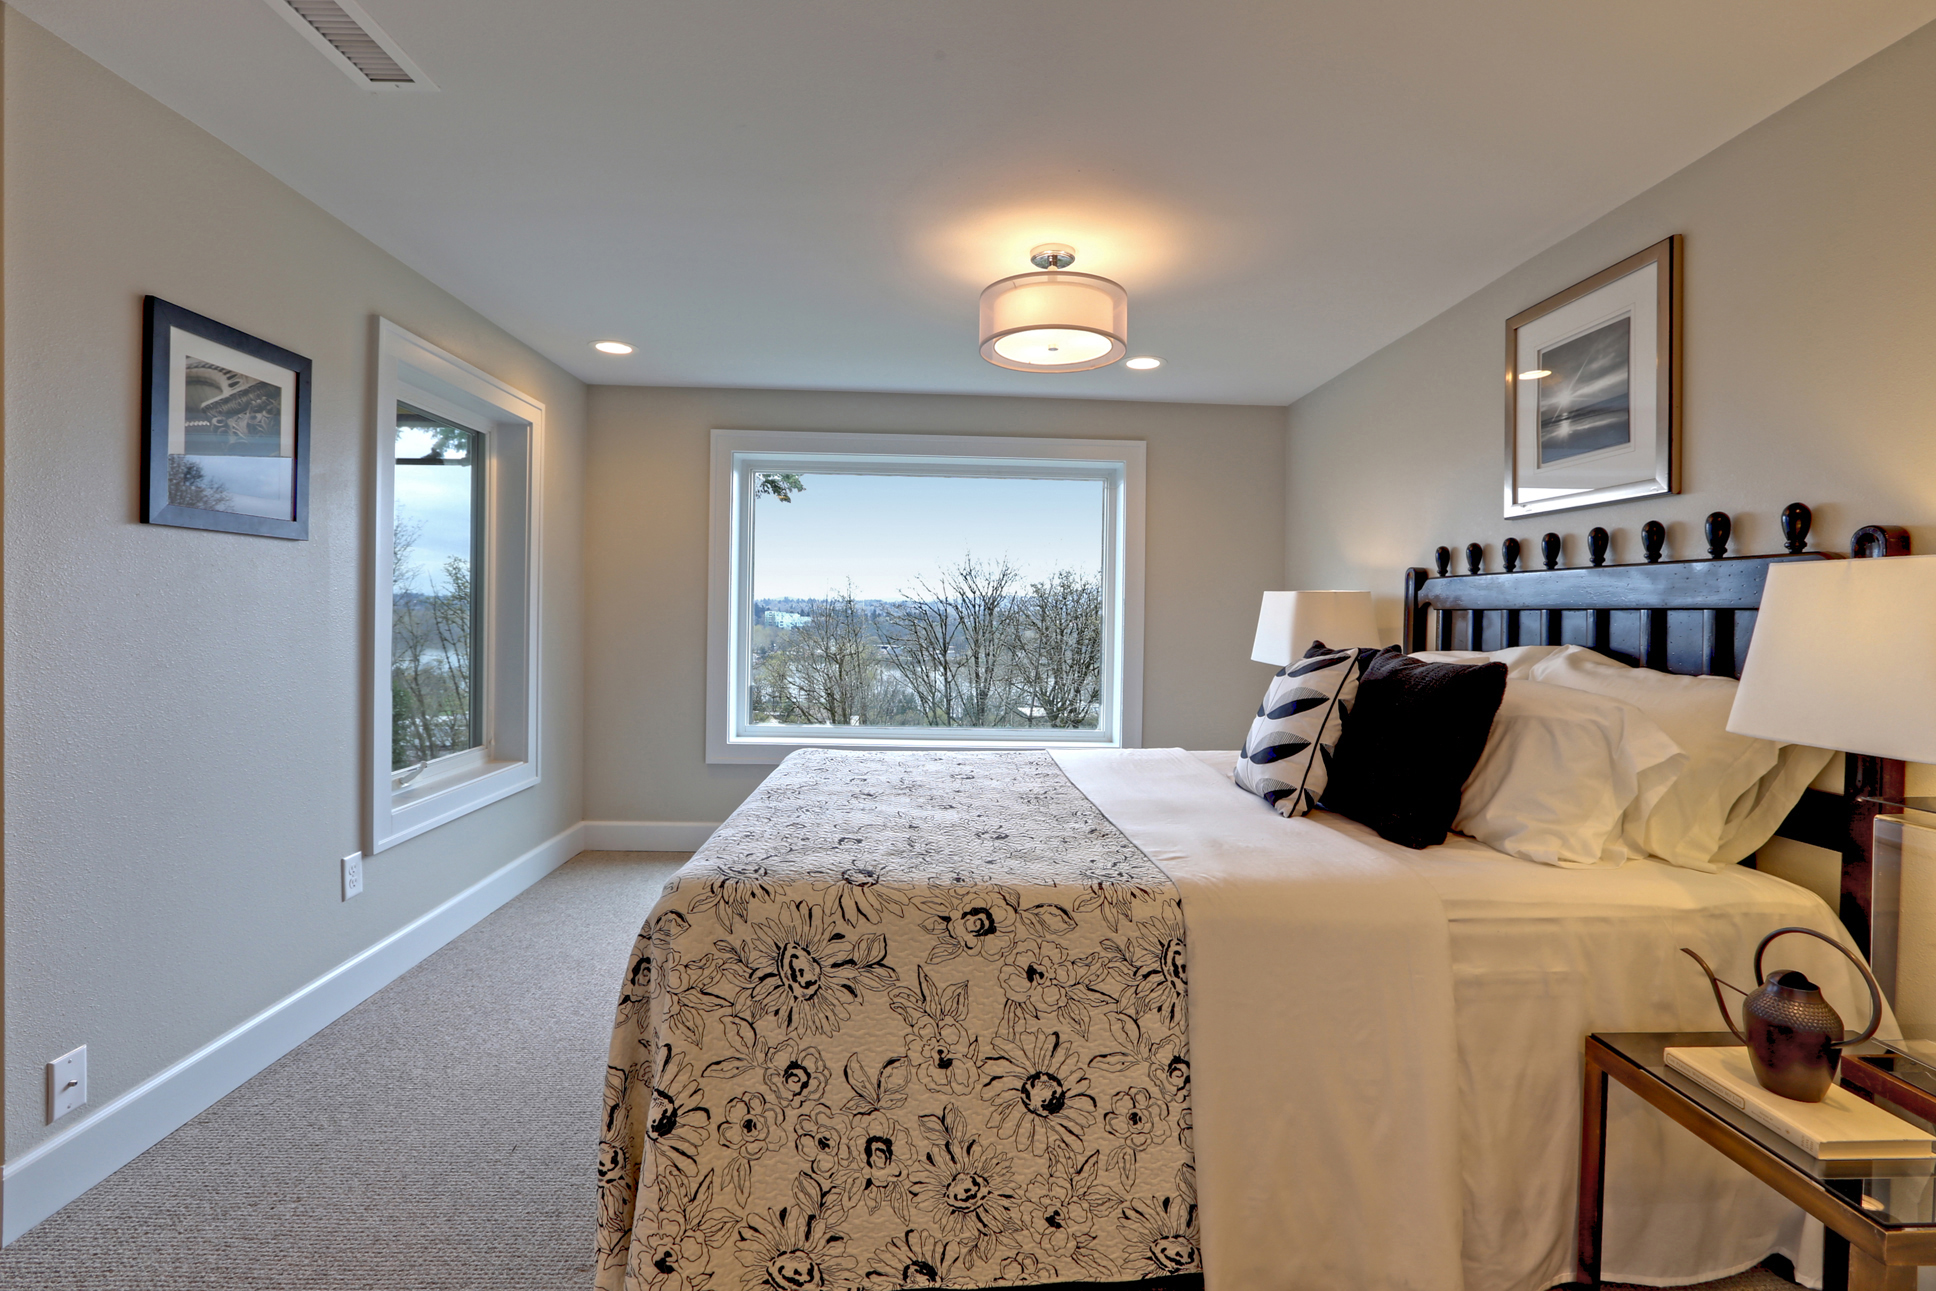 Panoramic views called for large north- and east-facing picture windows in the master bedroom. Softness and luxury is found underfoot with 100% natural New Zealand wool carpeting in the bedrooms.